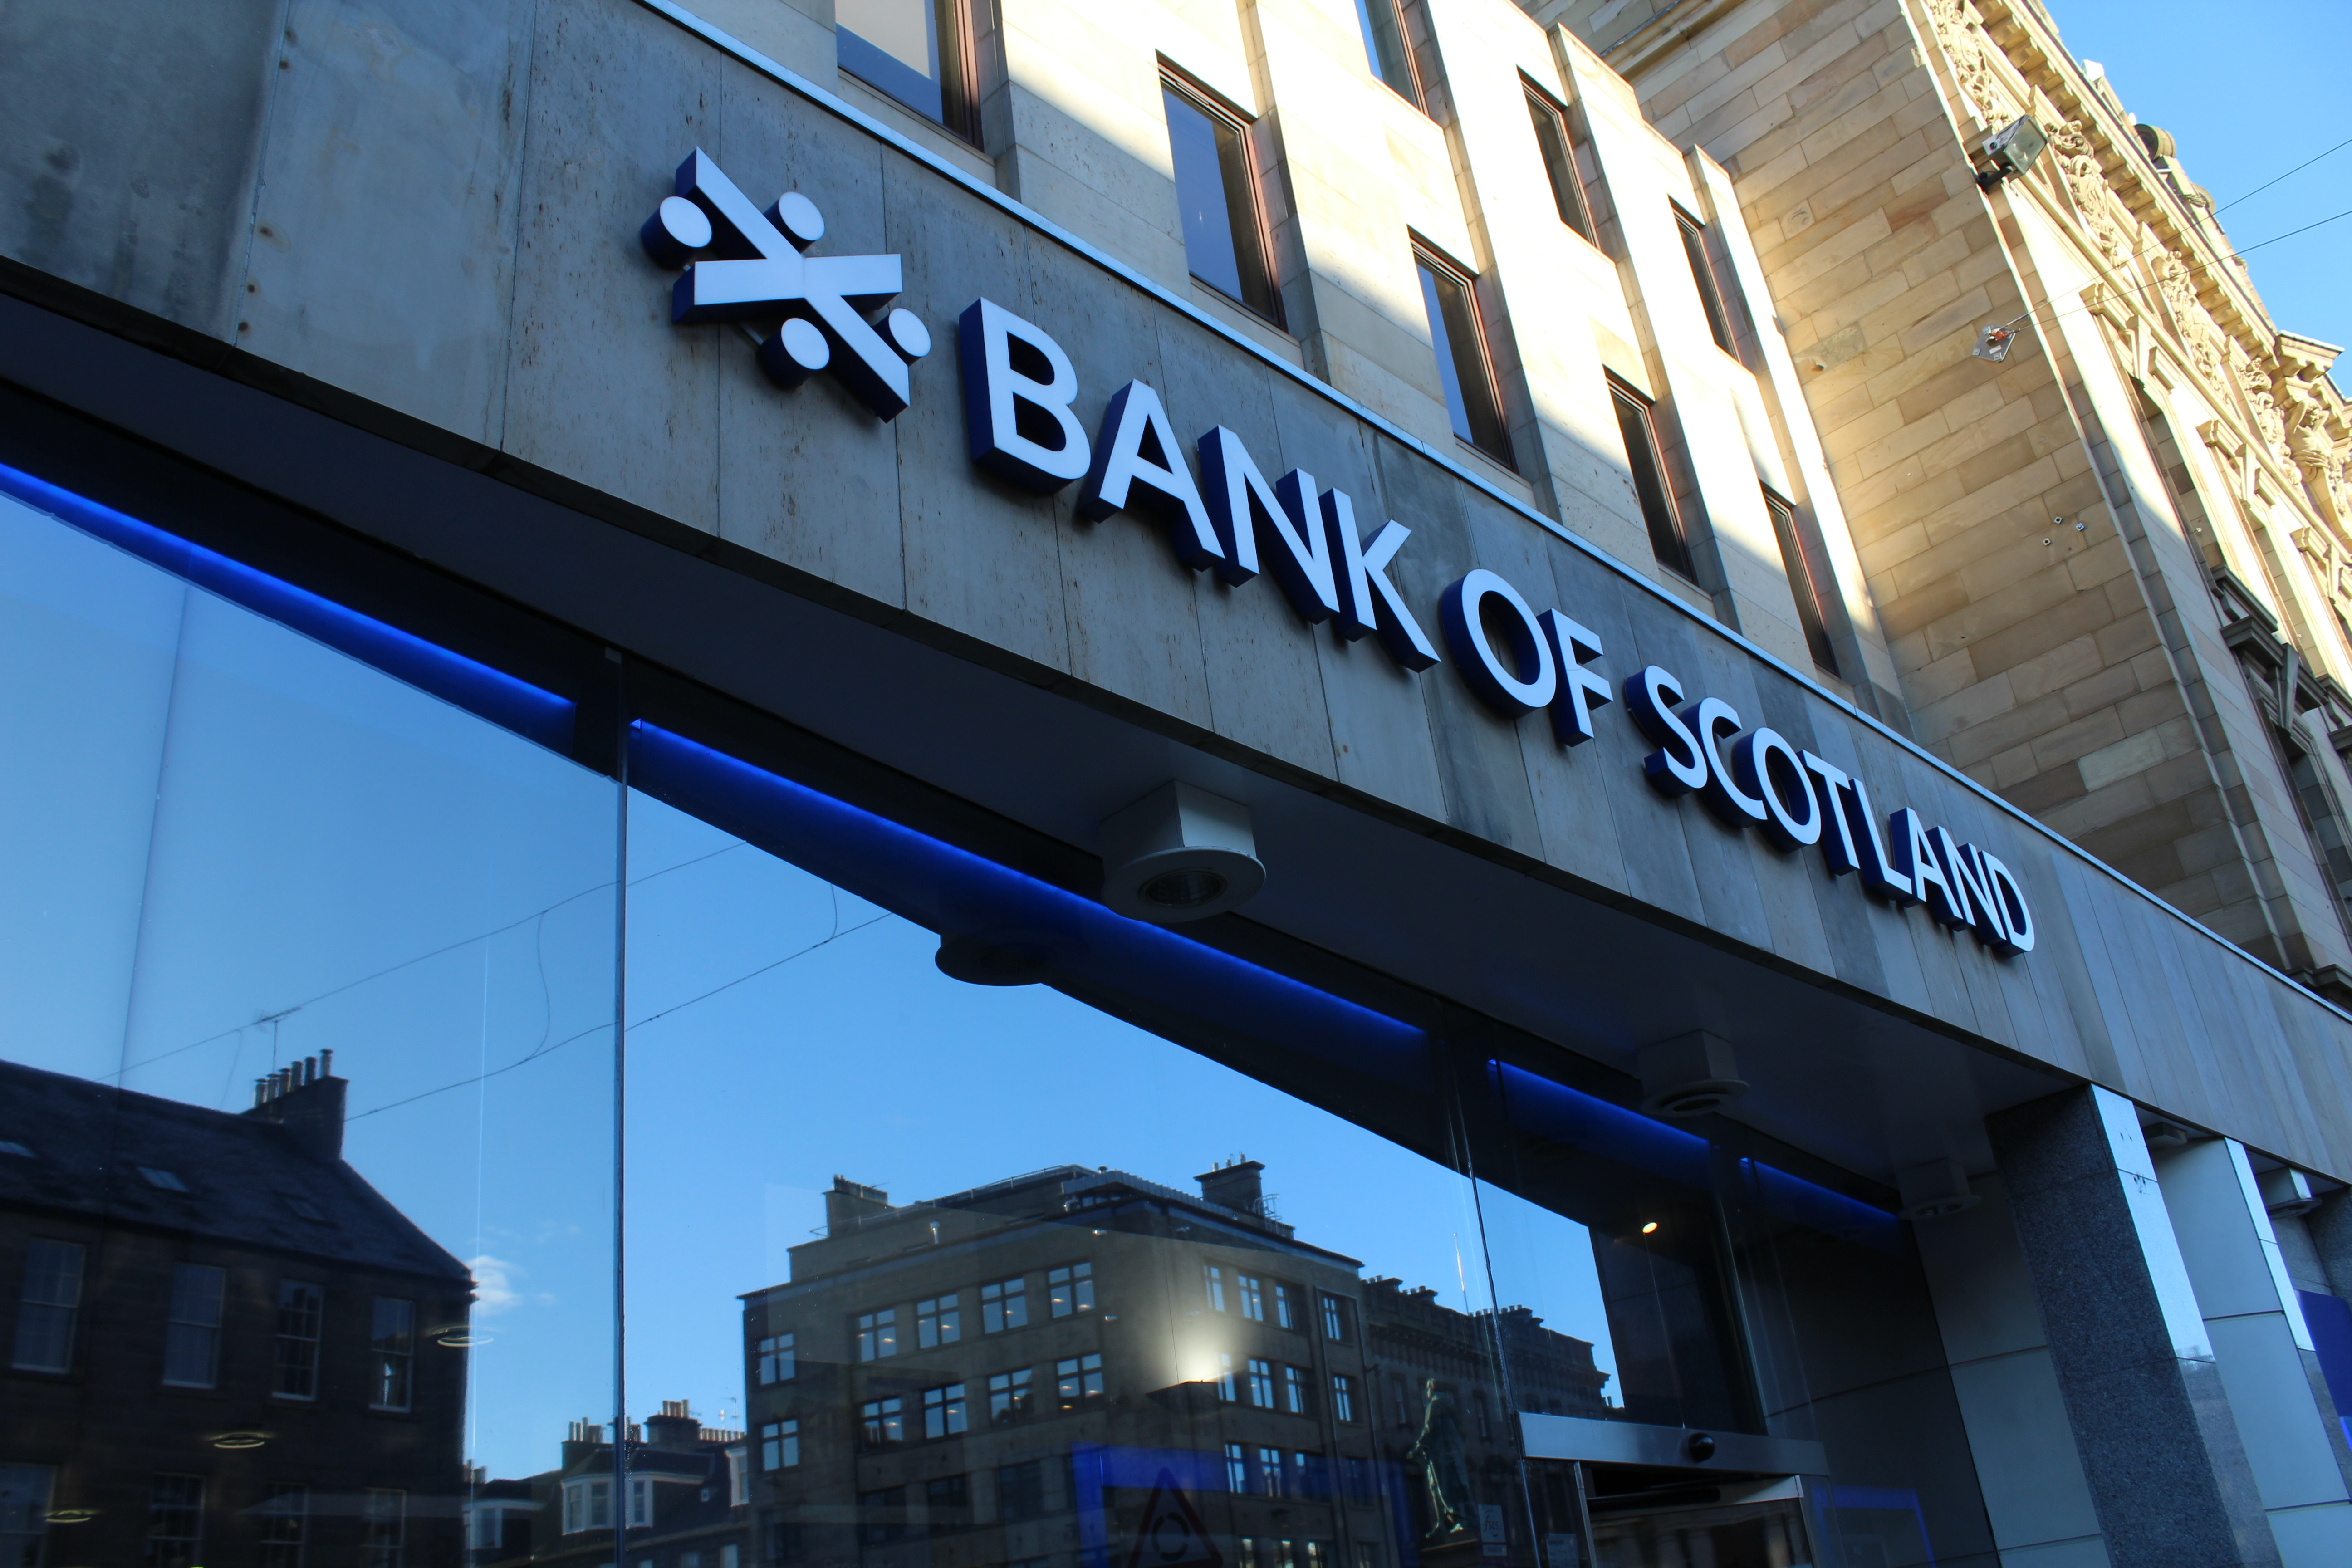 bank of scotland tops complaints table daily business